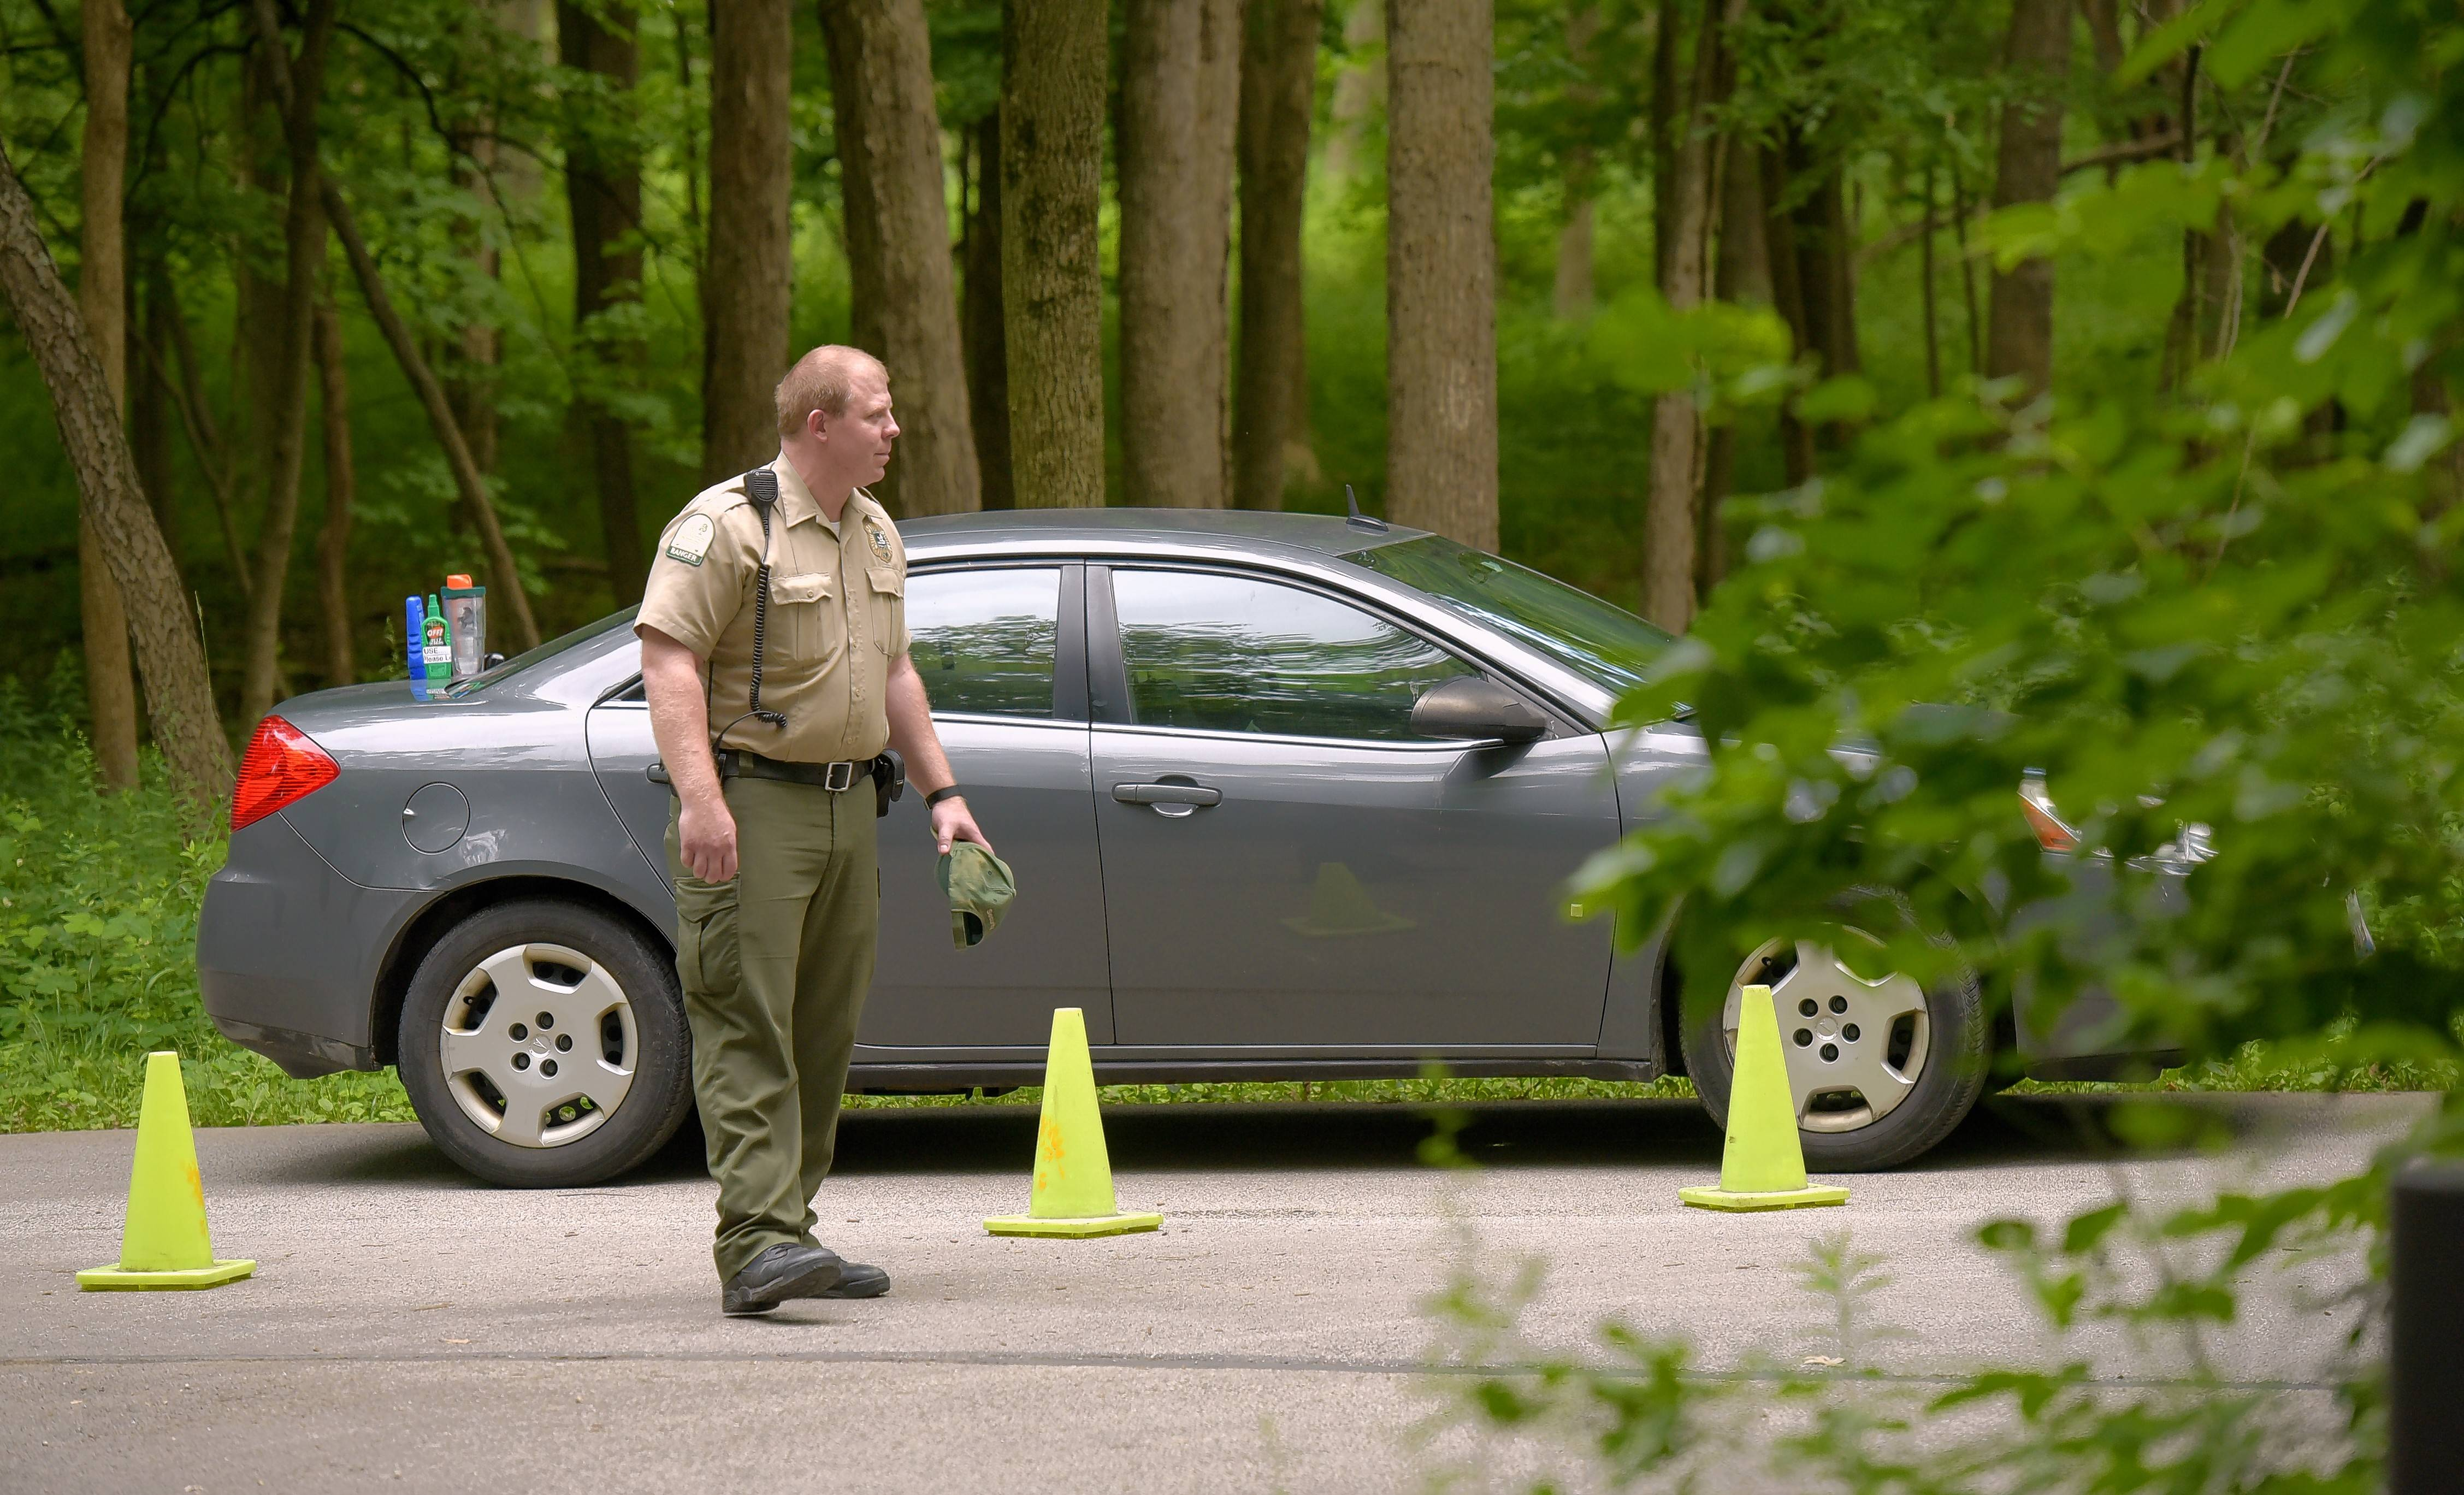 A Morton Arboretum ranger blocks traffic earlier this week after a body was found in a burned-out car on the far east side of the outdoor museum.